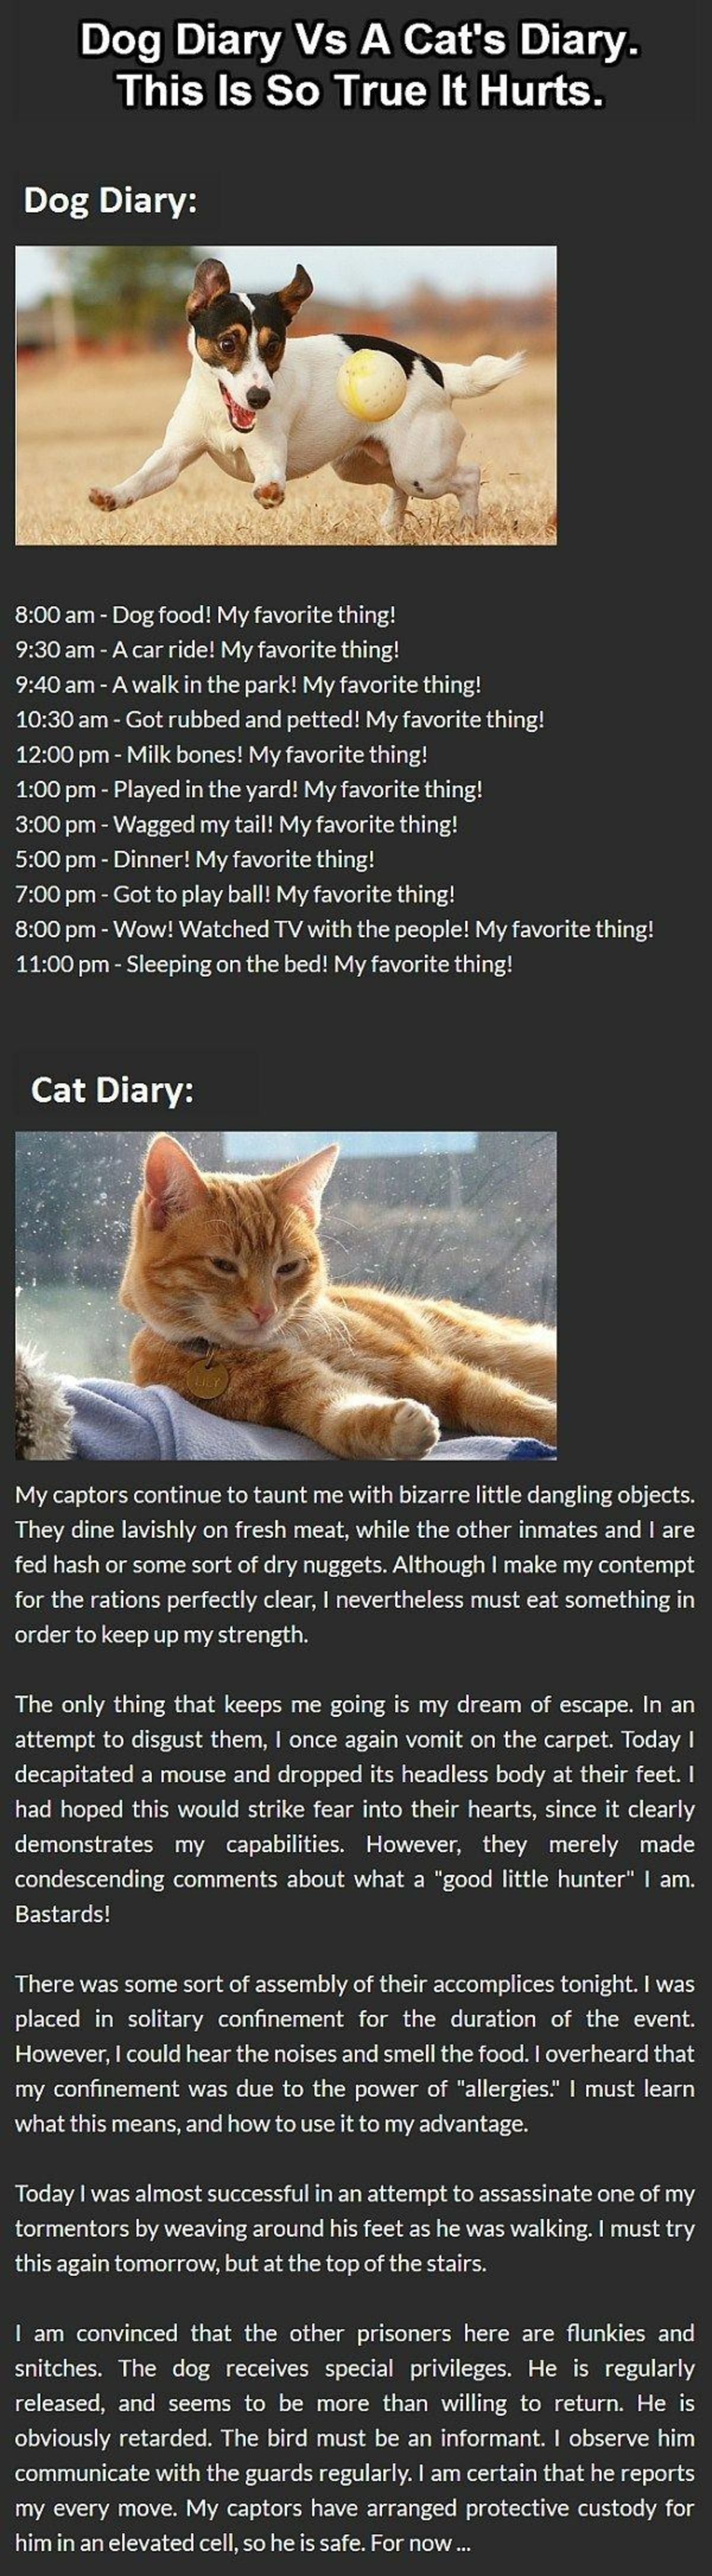 """Funny: Cat Vs Dog Diary. join list: CuteKitty (401 subs)Mention Clicks: 14247Msgs Sent: 121216Mention History join list:. """"He is obviously retarded"""""""